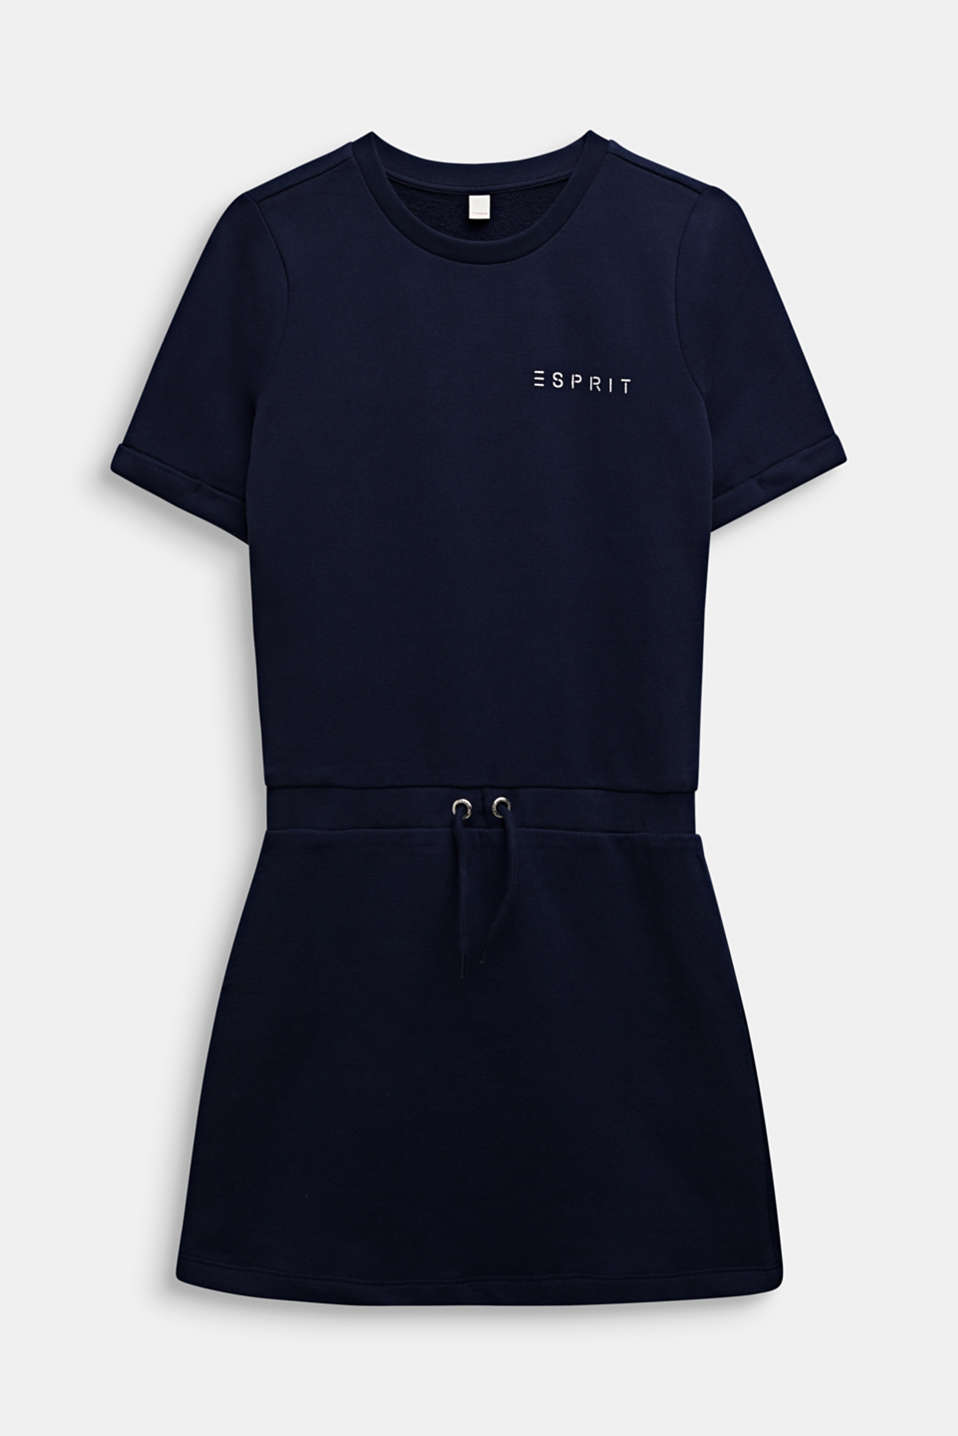 Esprit - Sweatshirt fabric dress with a shiny logo print